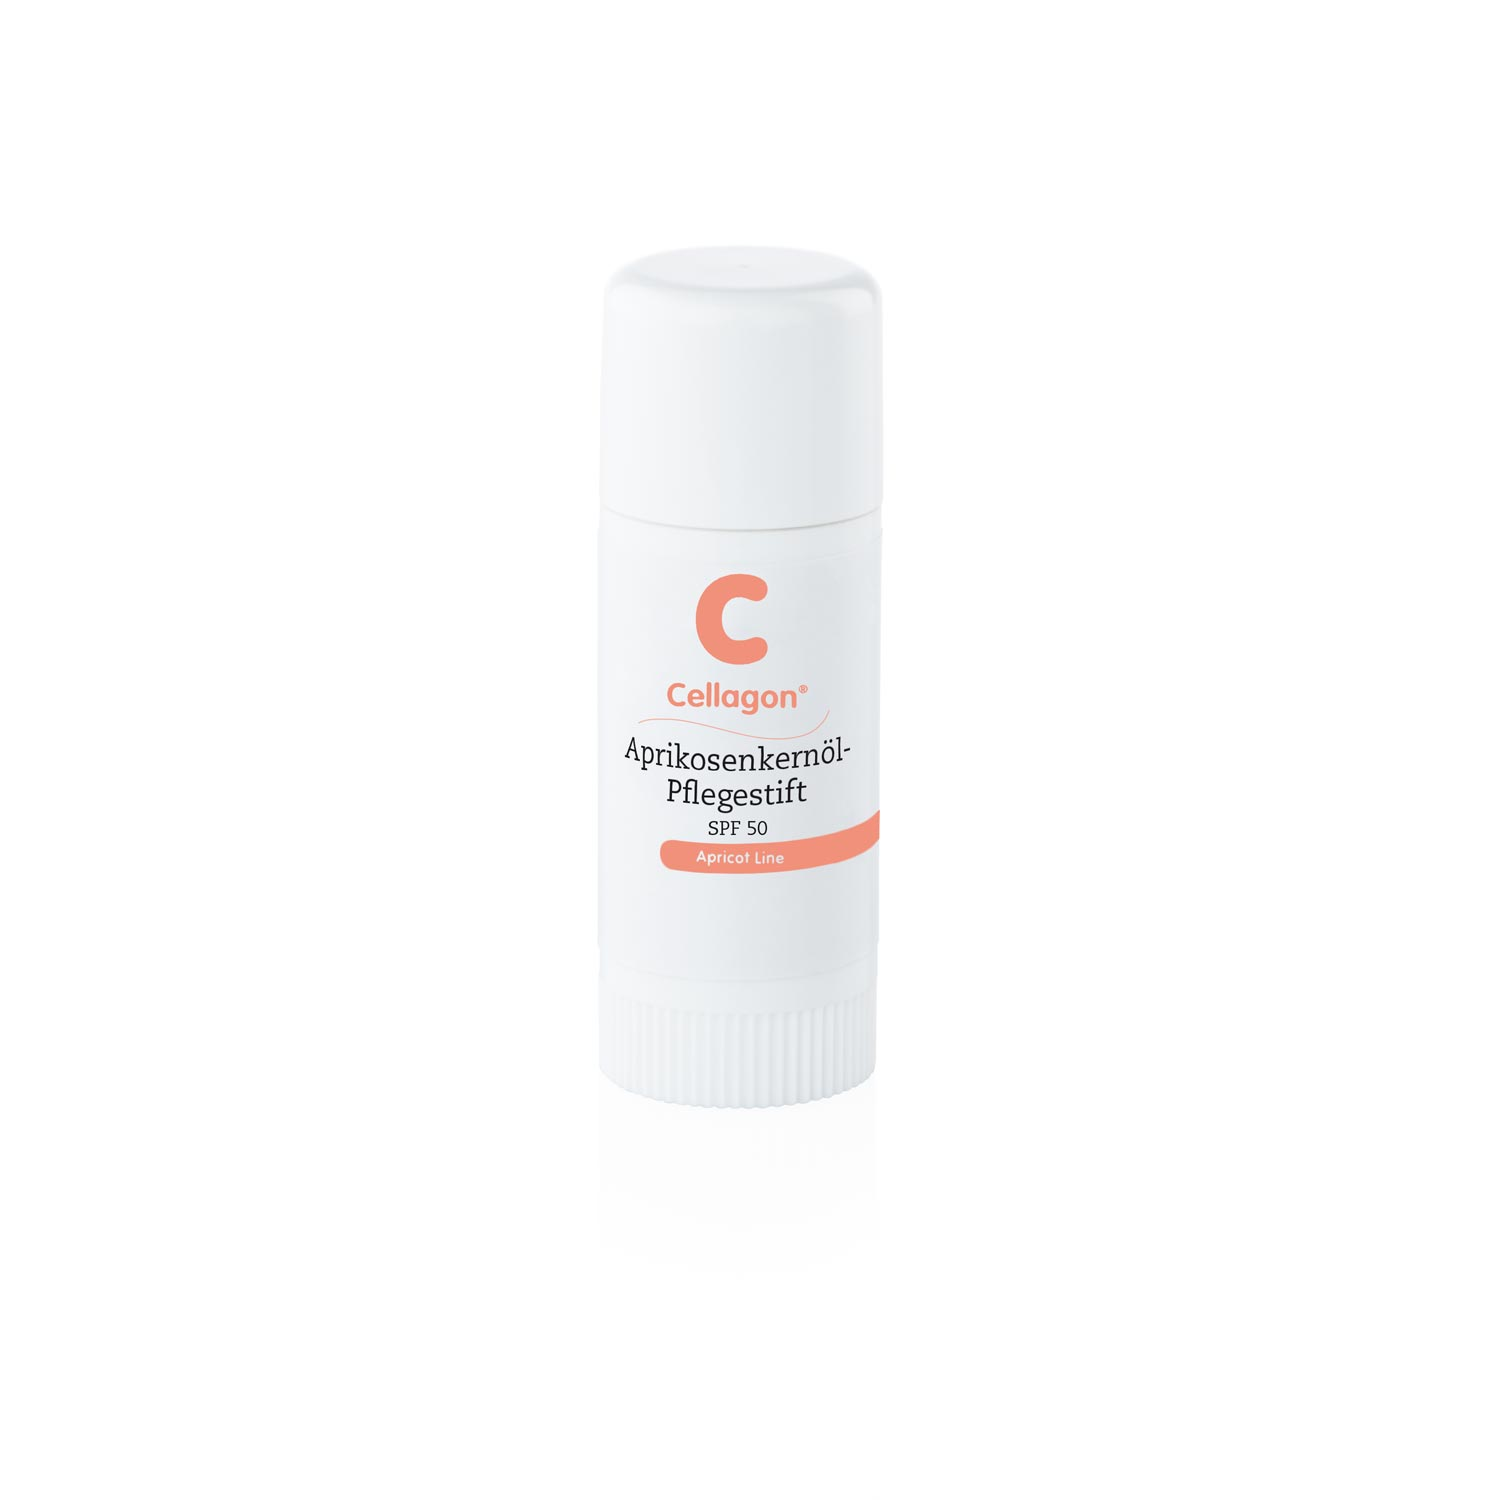 Cellagon Aprikosenkernöl-Pflegestift SPF 50+